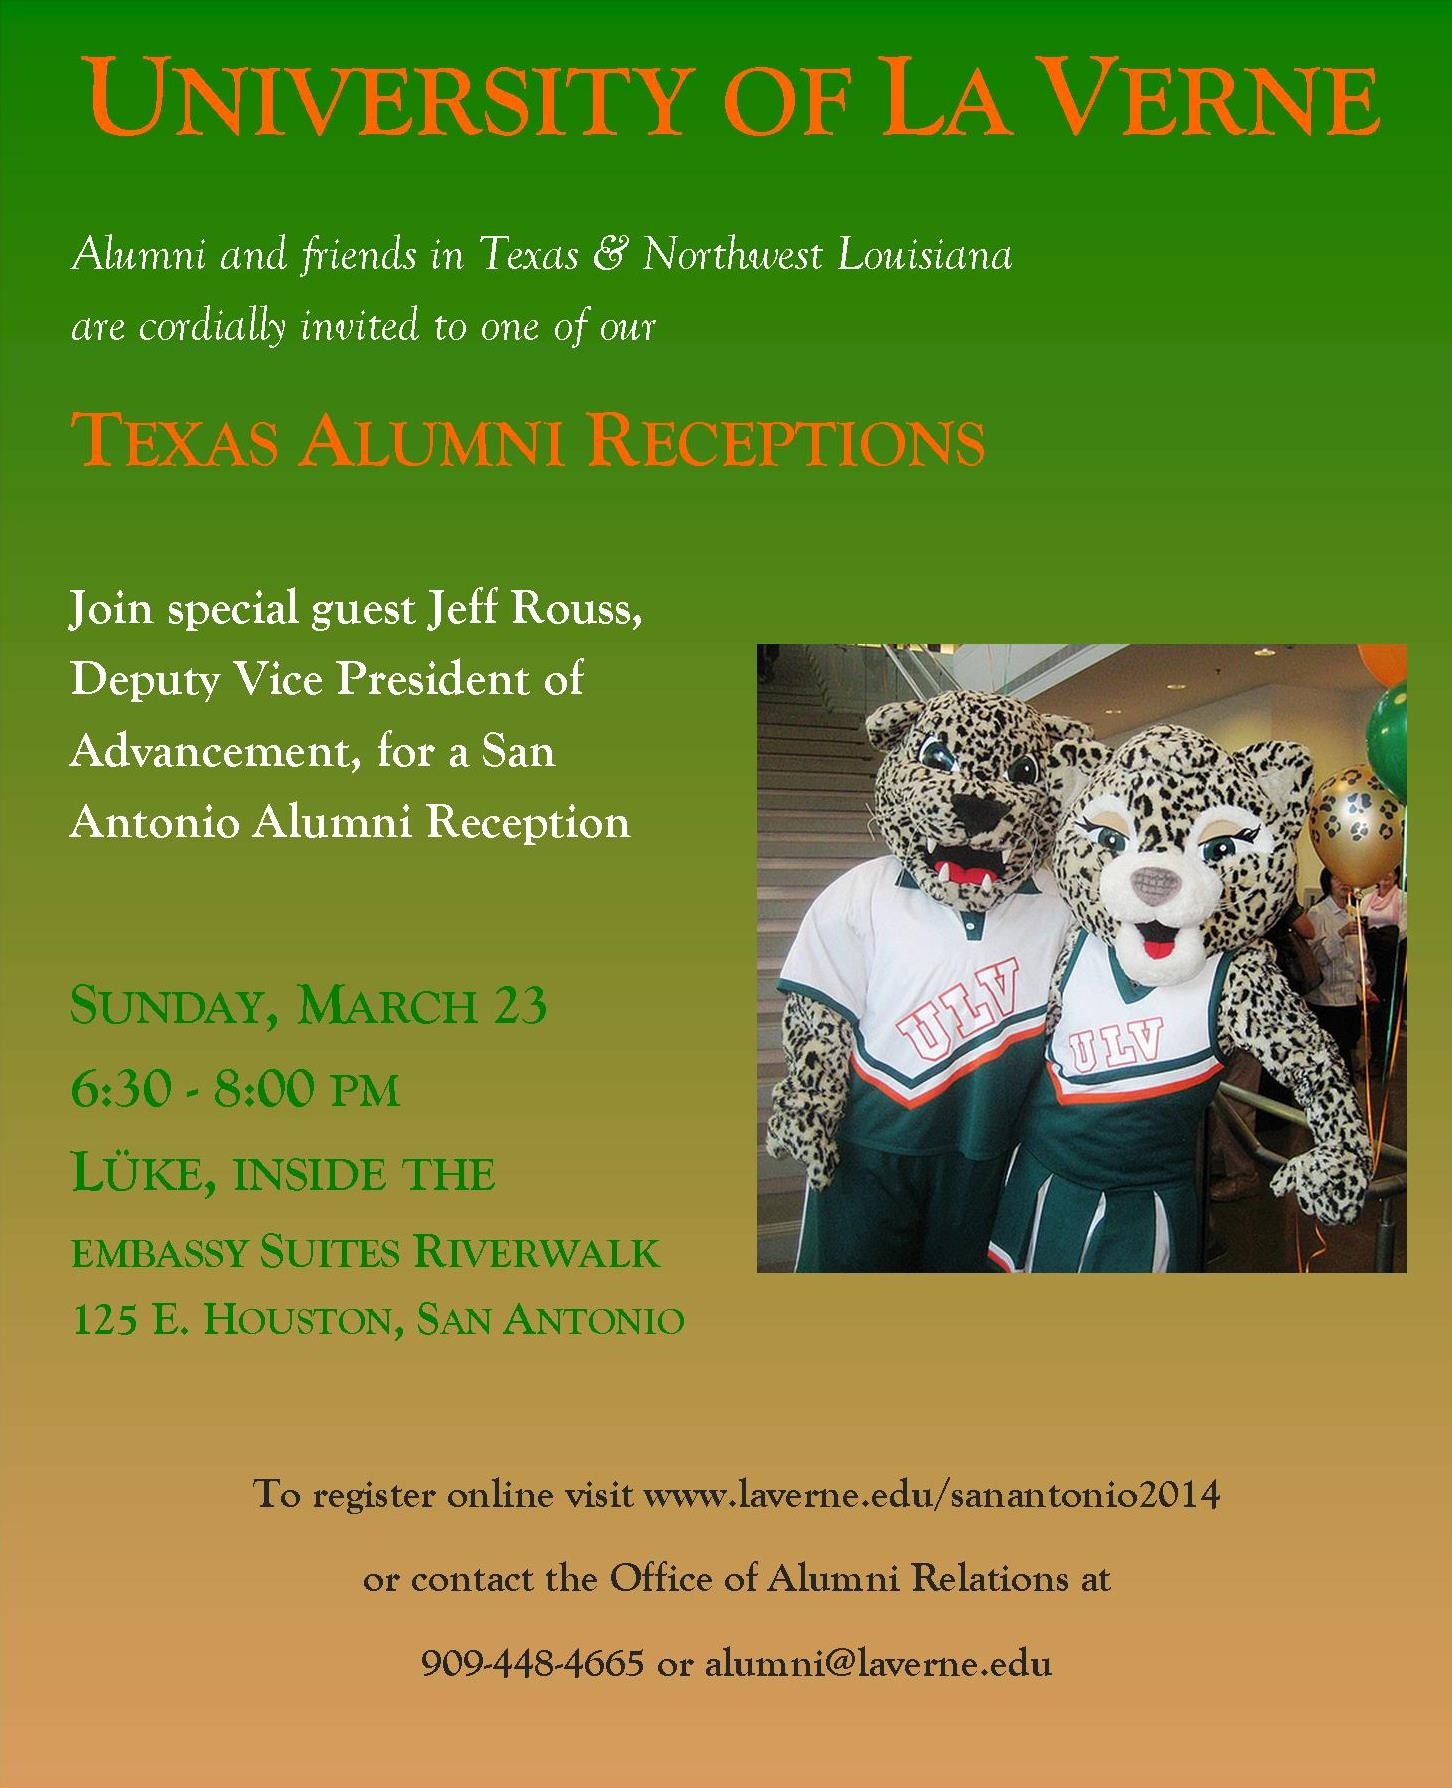 Join special guest Jeff Rouss, Deputy Vice President of Advancement, for a San Antonio Alumni Reception  SUNDAY, MARCH 23 6:30 - 8:00 PM LÜKE, INSIDE THE EMBASSY SUITES RIVERWALK 125 E. HOUSTON, SAN ANTONIO